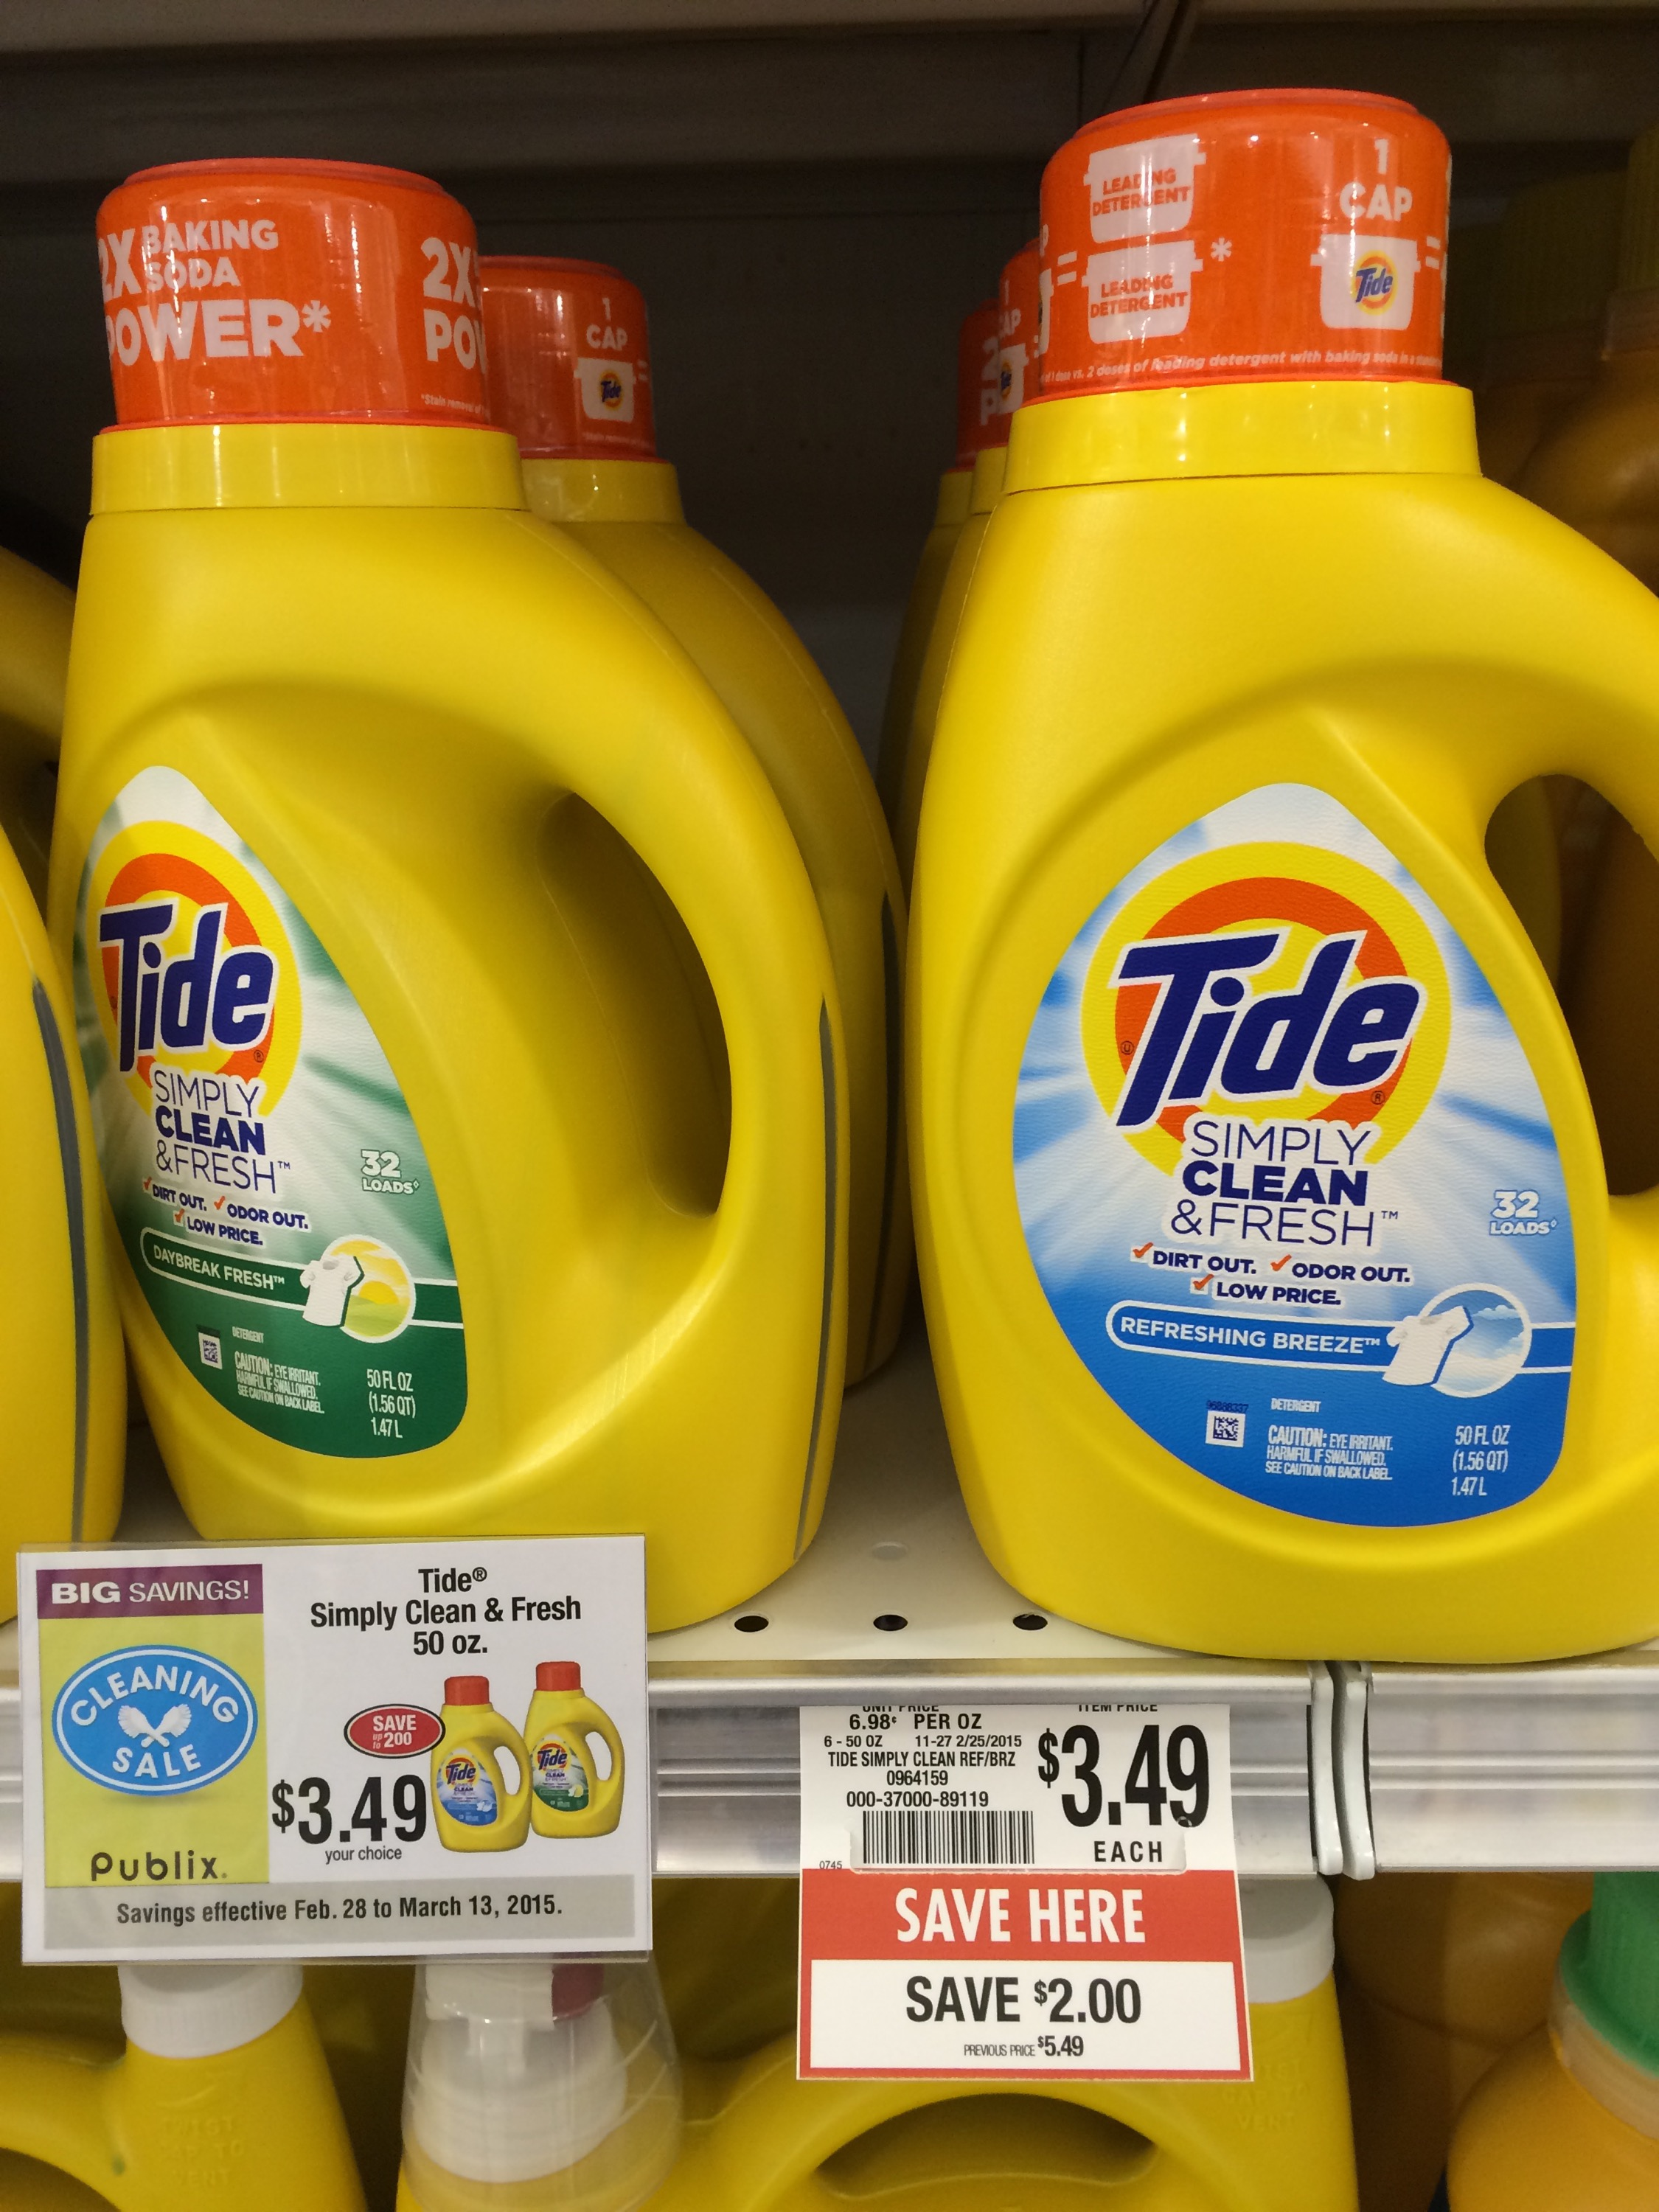 image relating to Tide Simply Clean Printable Coupons named Publix Far more Reveals: Tide Simply just Fresh $2.49, Go through Bare